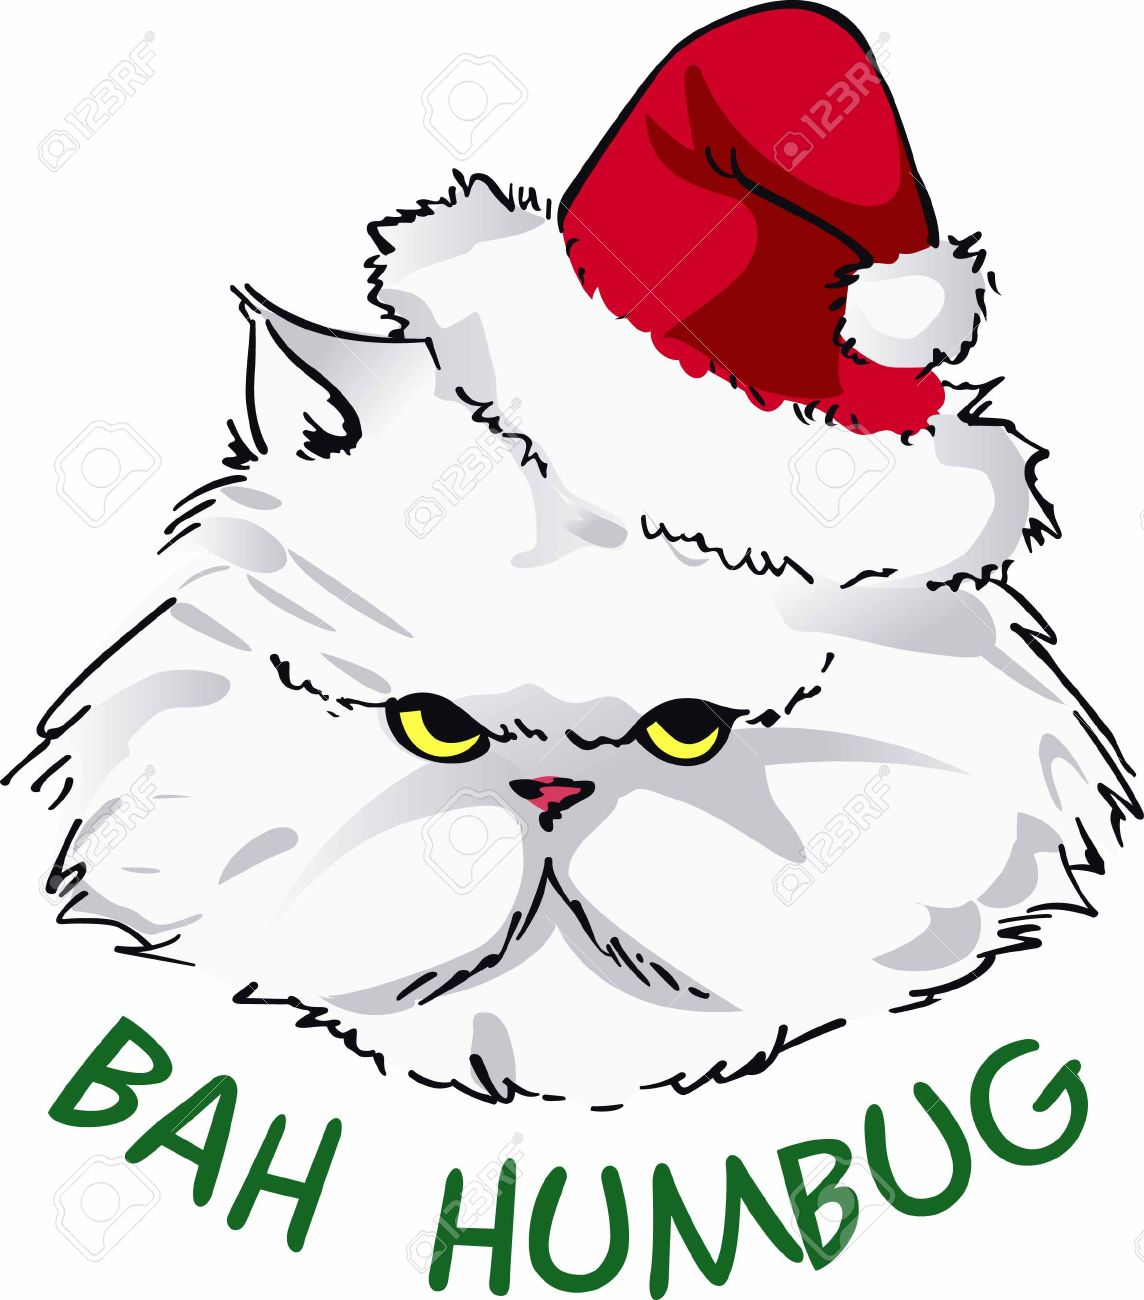 Cheer up your holiday dcor with a grumpy Santa cat. - 45352059